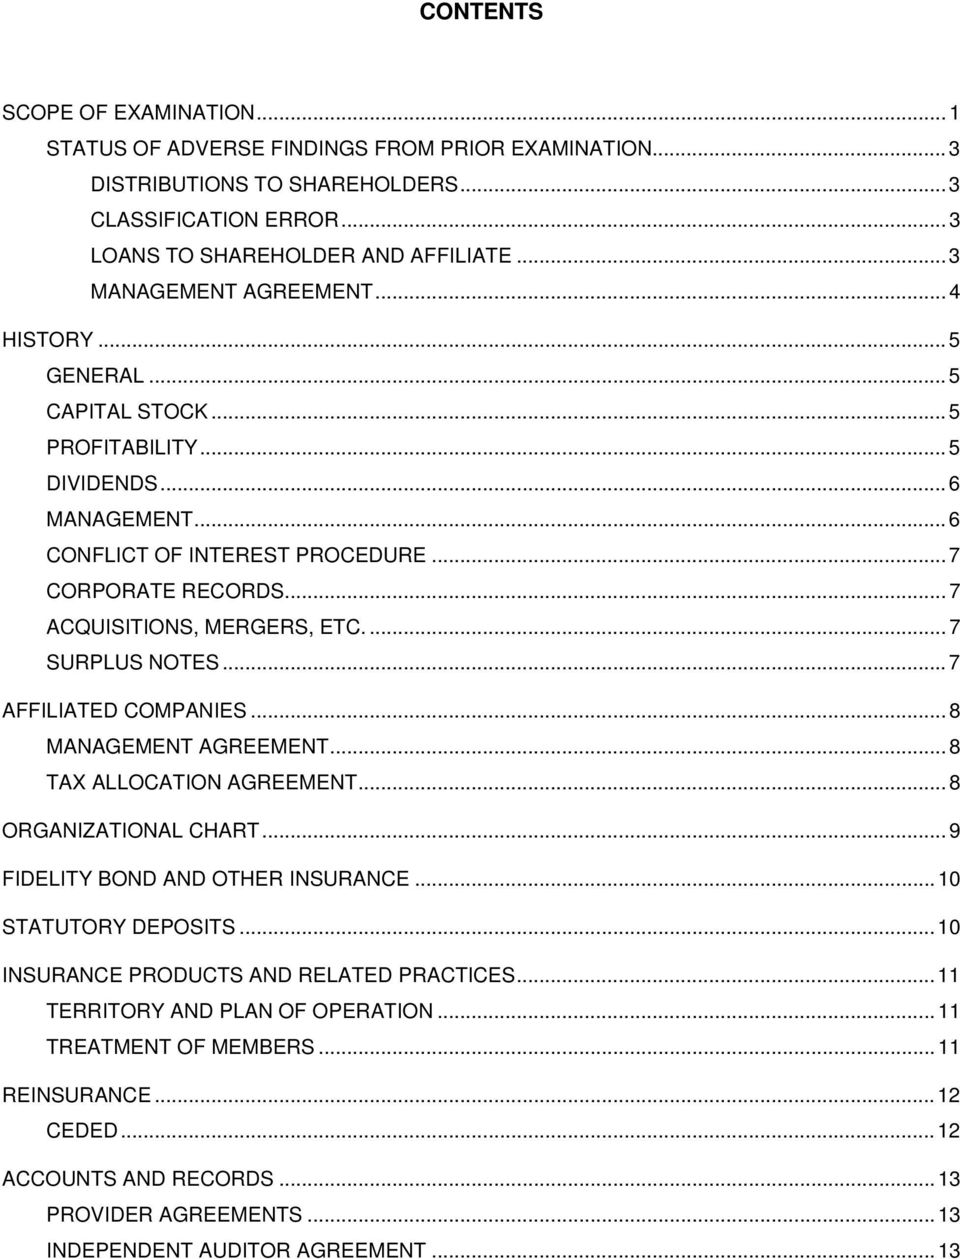 ..7 ACQUISITIONS, MERGERS, ETC....7 SURPLUS NOTES...7 AFFILIATED COMPANIES...8 MANAGEMENT AGREEMENT...8 TAX ALLOCATION AGREEMENT...8 ORGANIZATIONAL CHART...9 FIDELITY BOND AND OTHER INSURANCE.